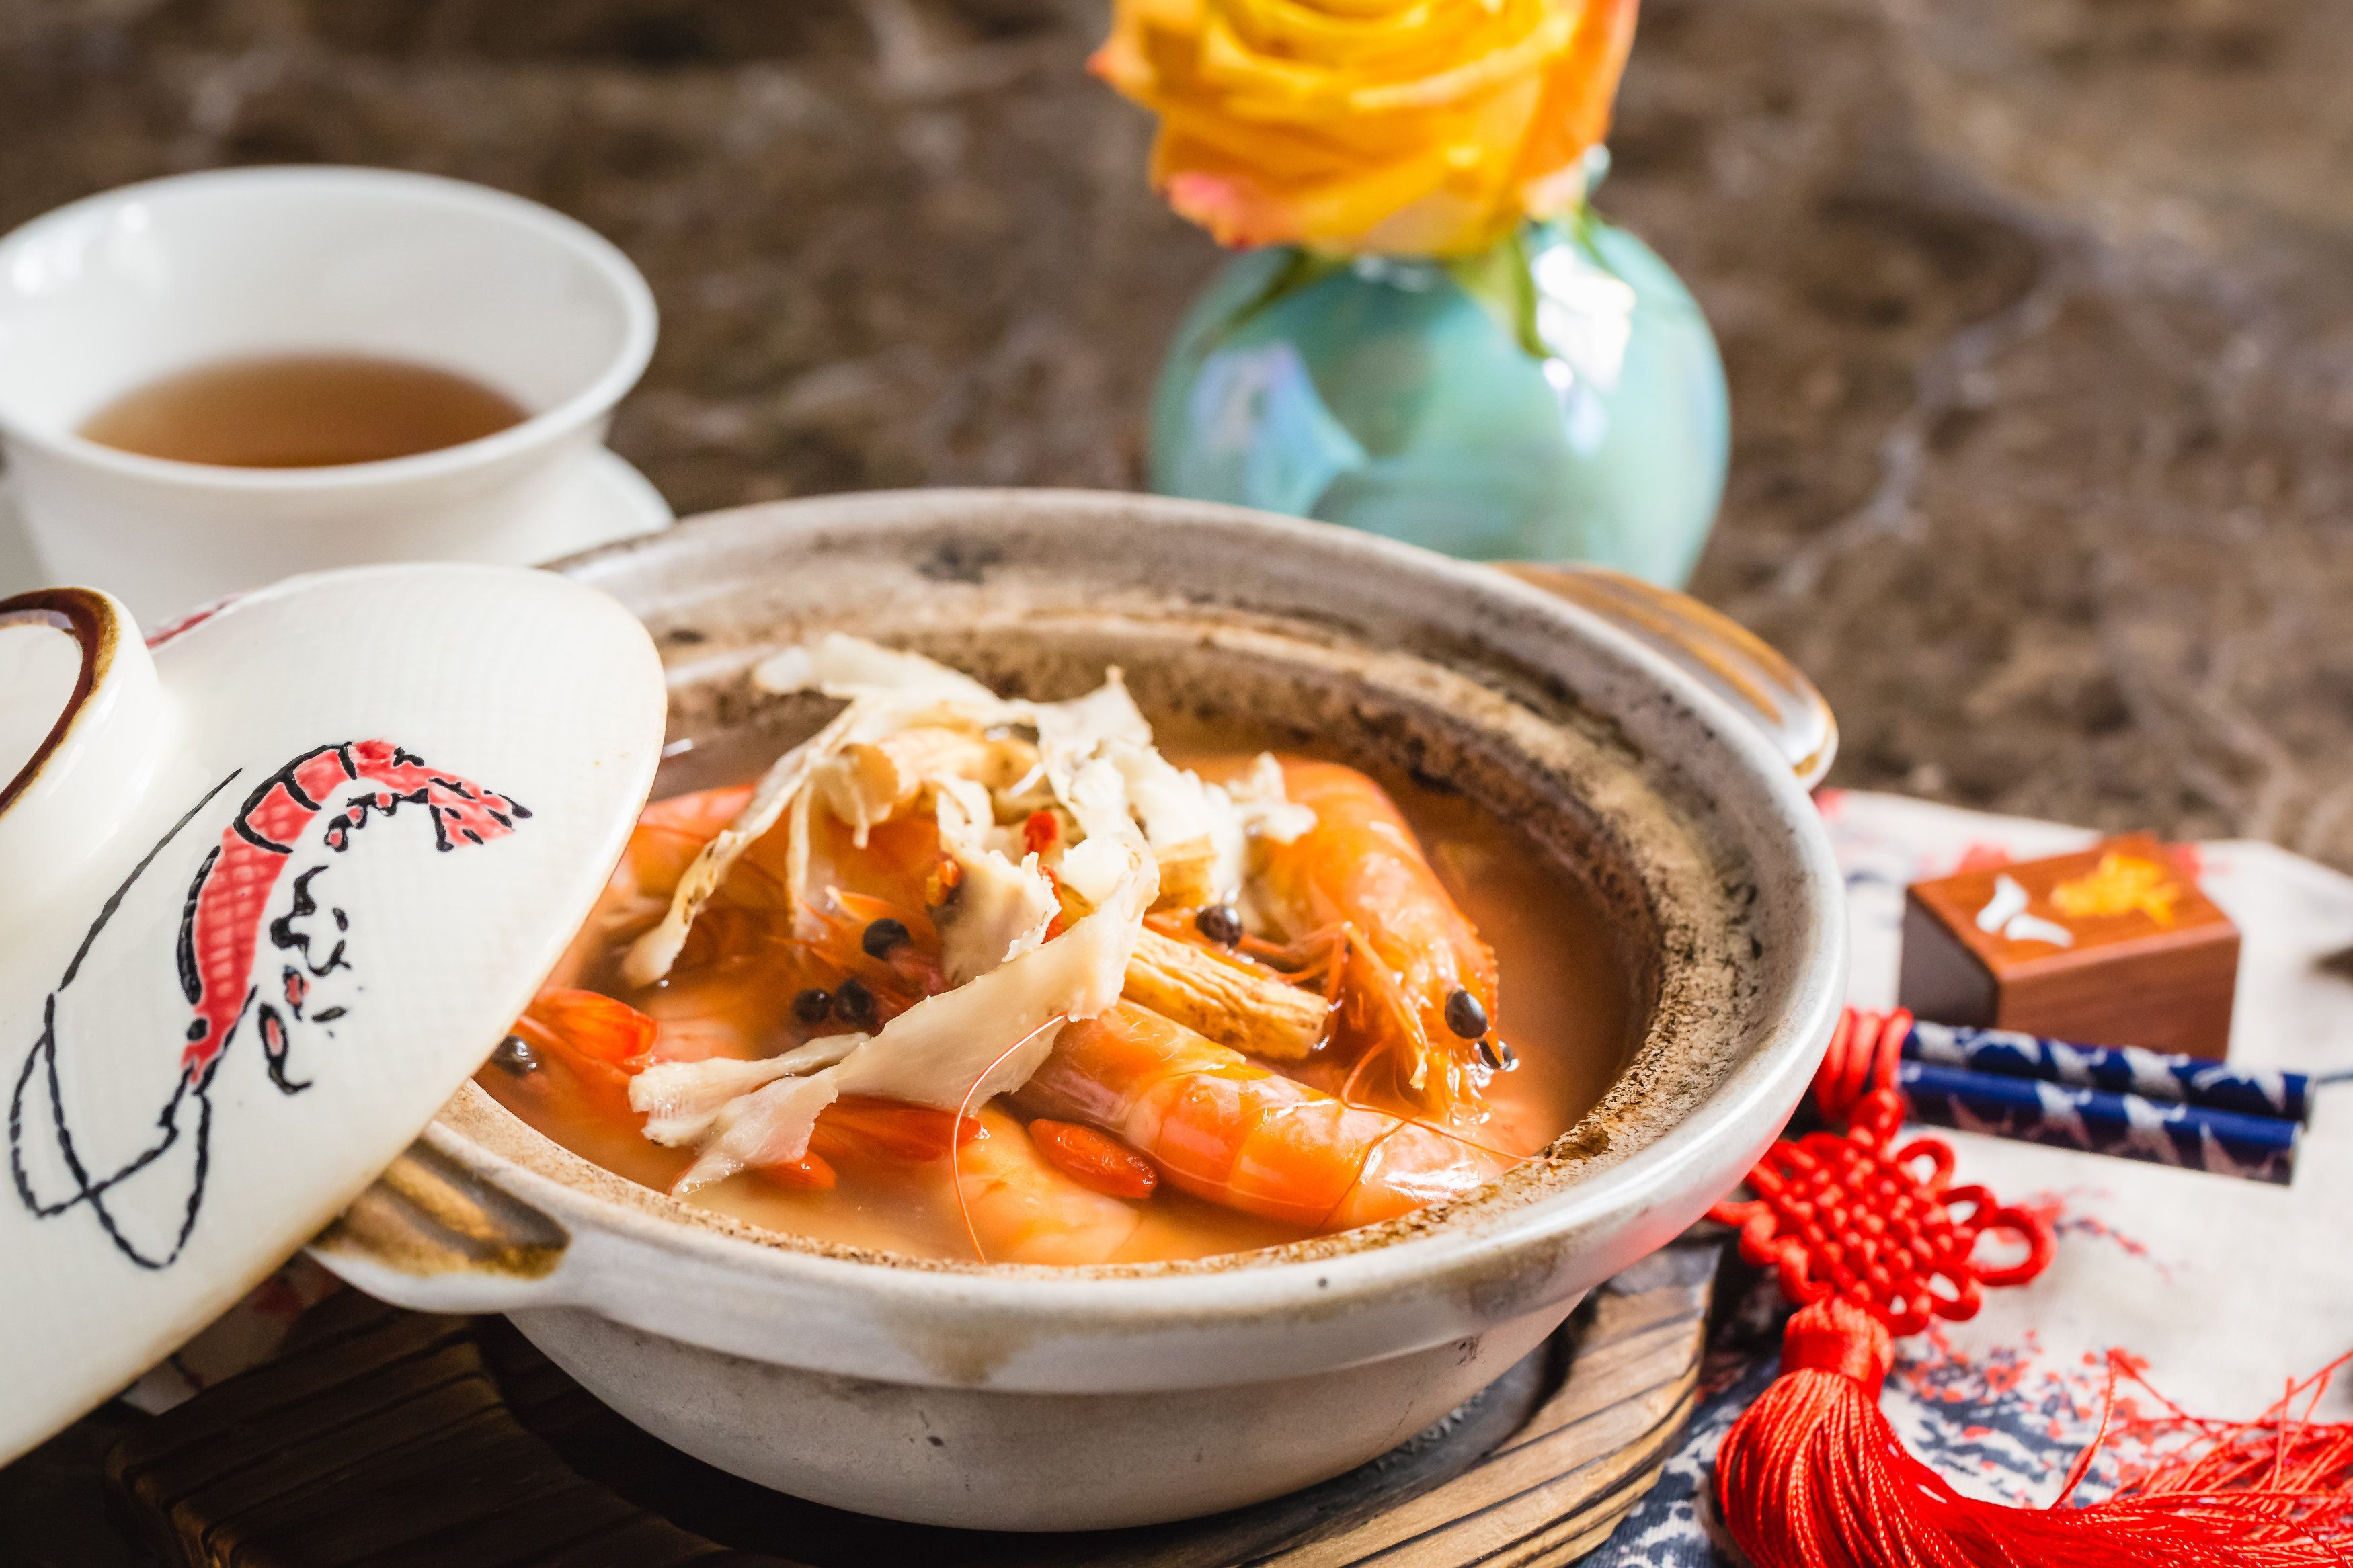 Sum Yi Tai's Dining Club - Cantonese Cuisines With An Elevated Sense Of Decadence